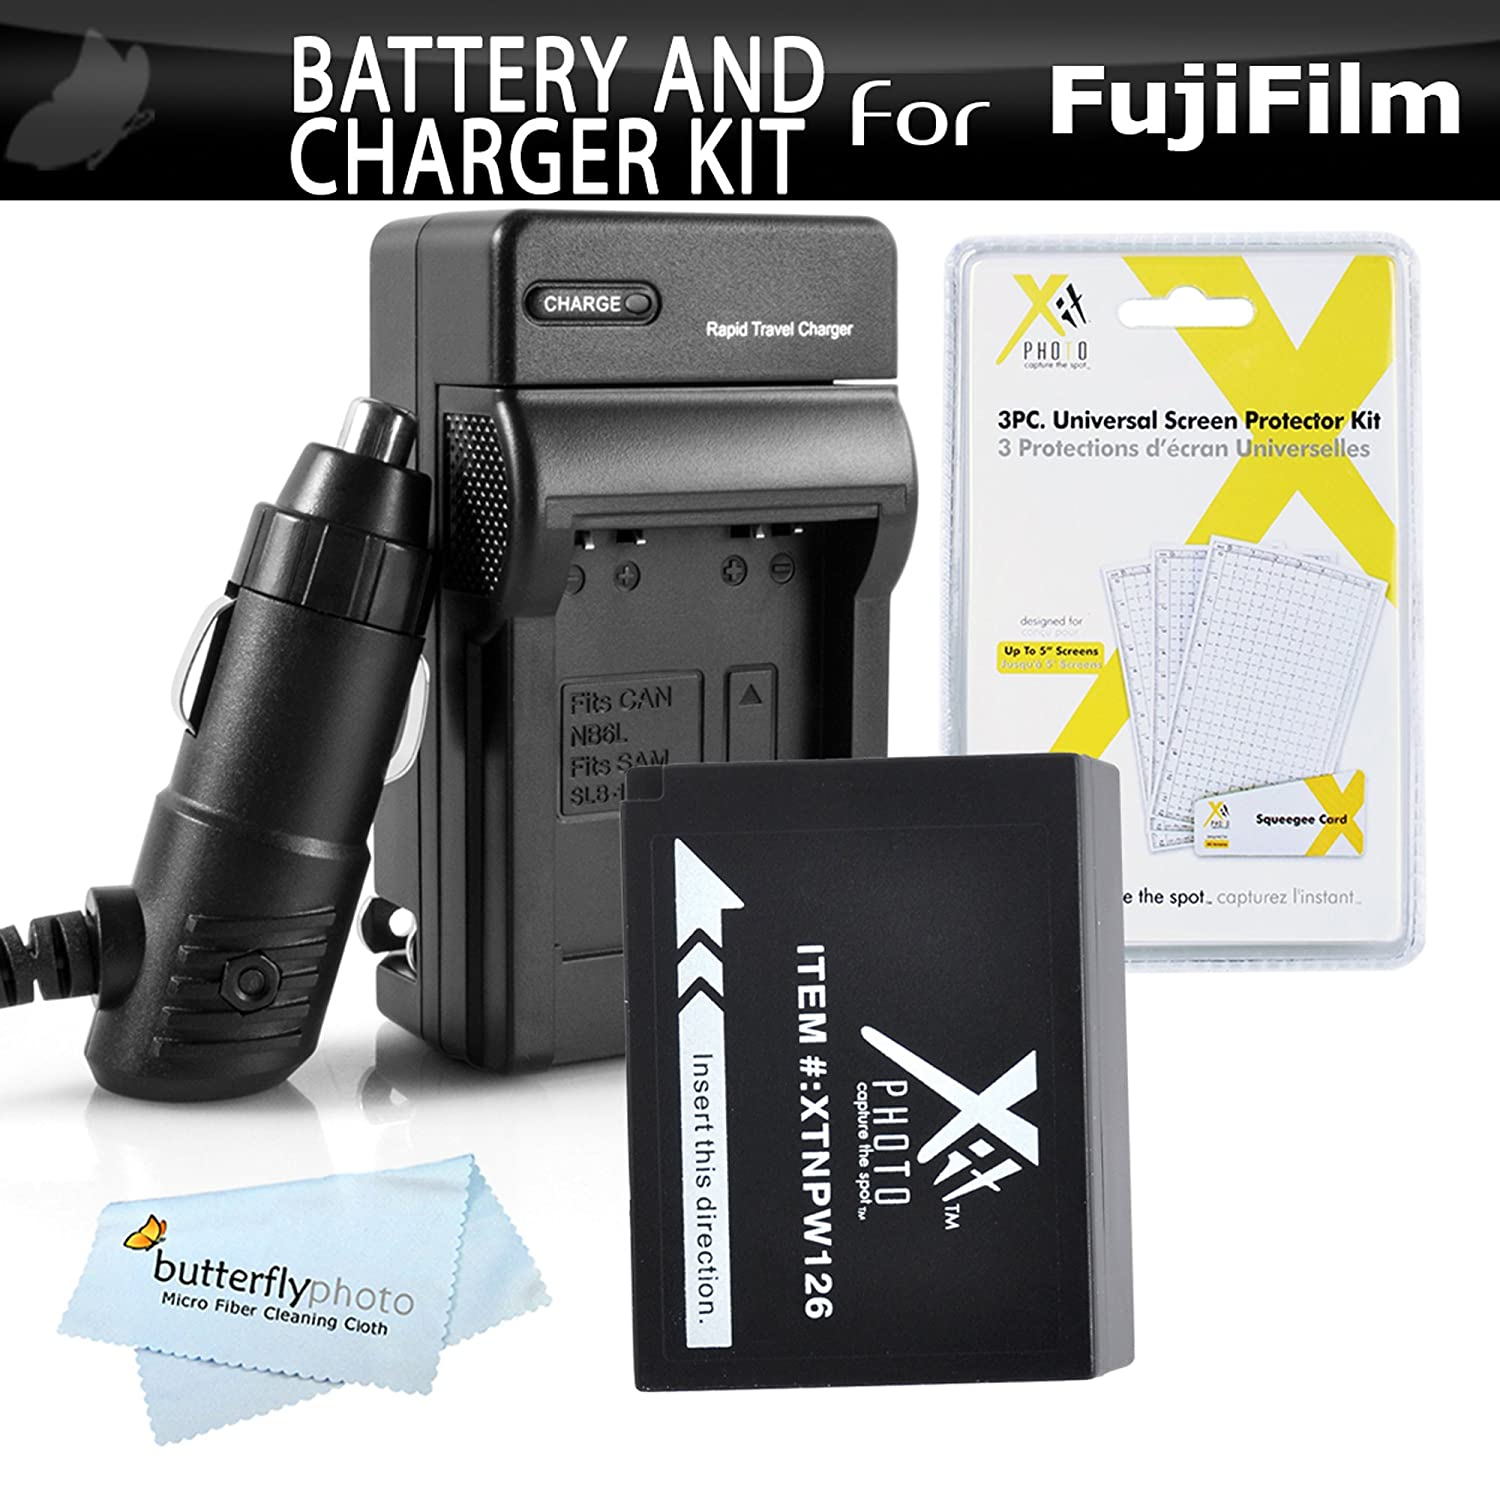 Battery And Charger Kit For Fuji Fujifilm Finepix Screen Guard Xt10 Hs30exr X Pro1 Pro2 A1 Hs33exr E1 E2 Hs50exr T1 A2 T10 A3 T2